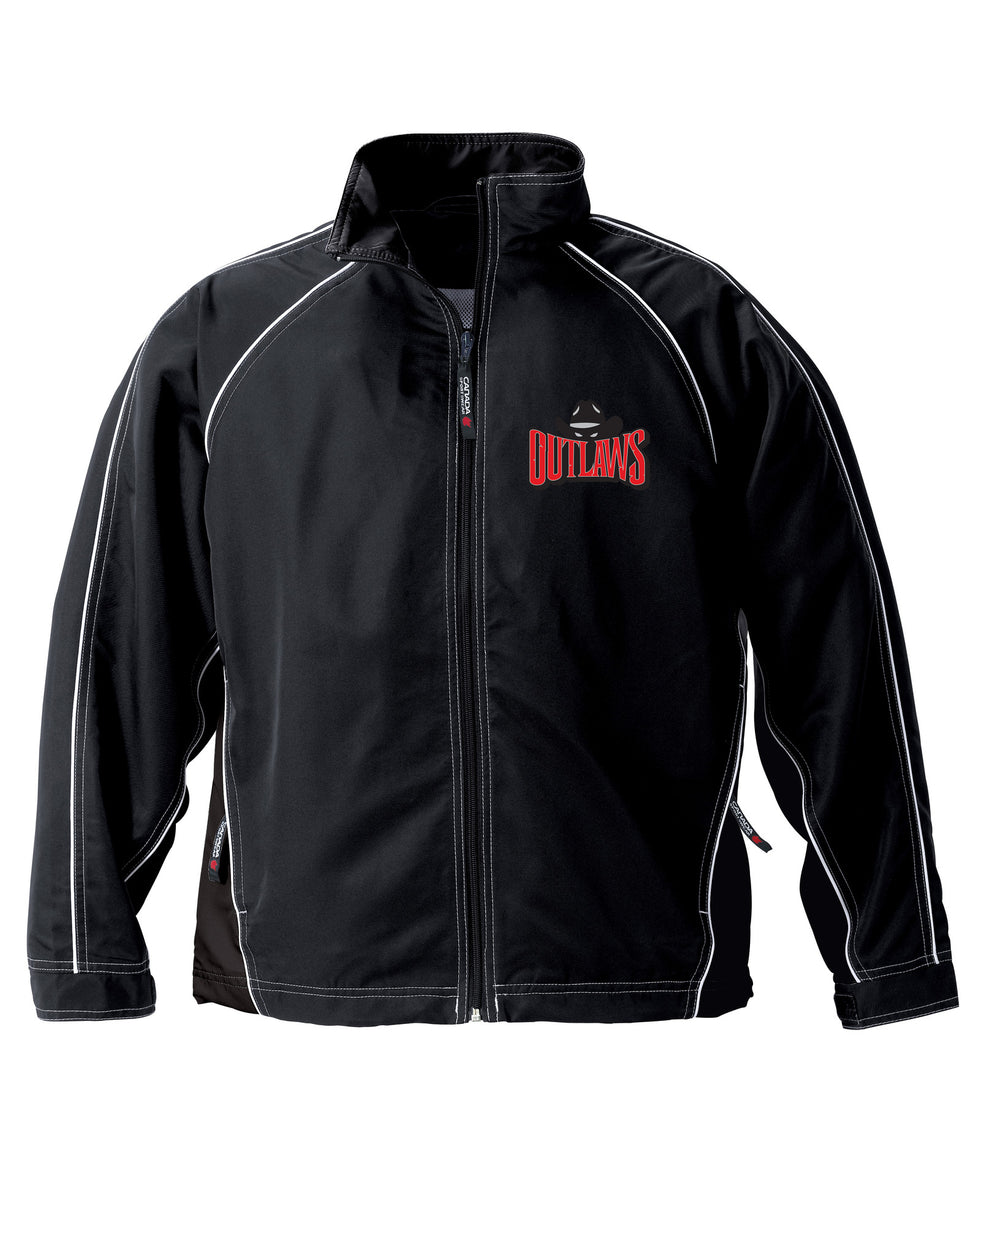 IDEA - Track Jacket - Mens